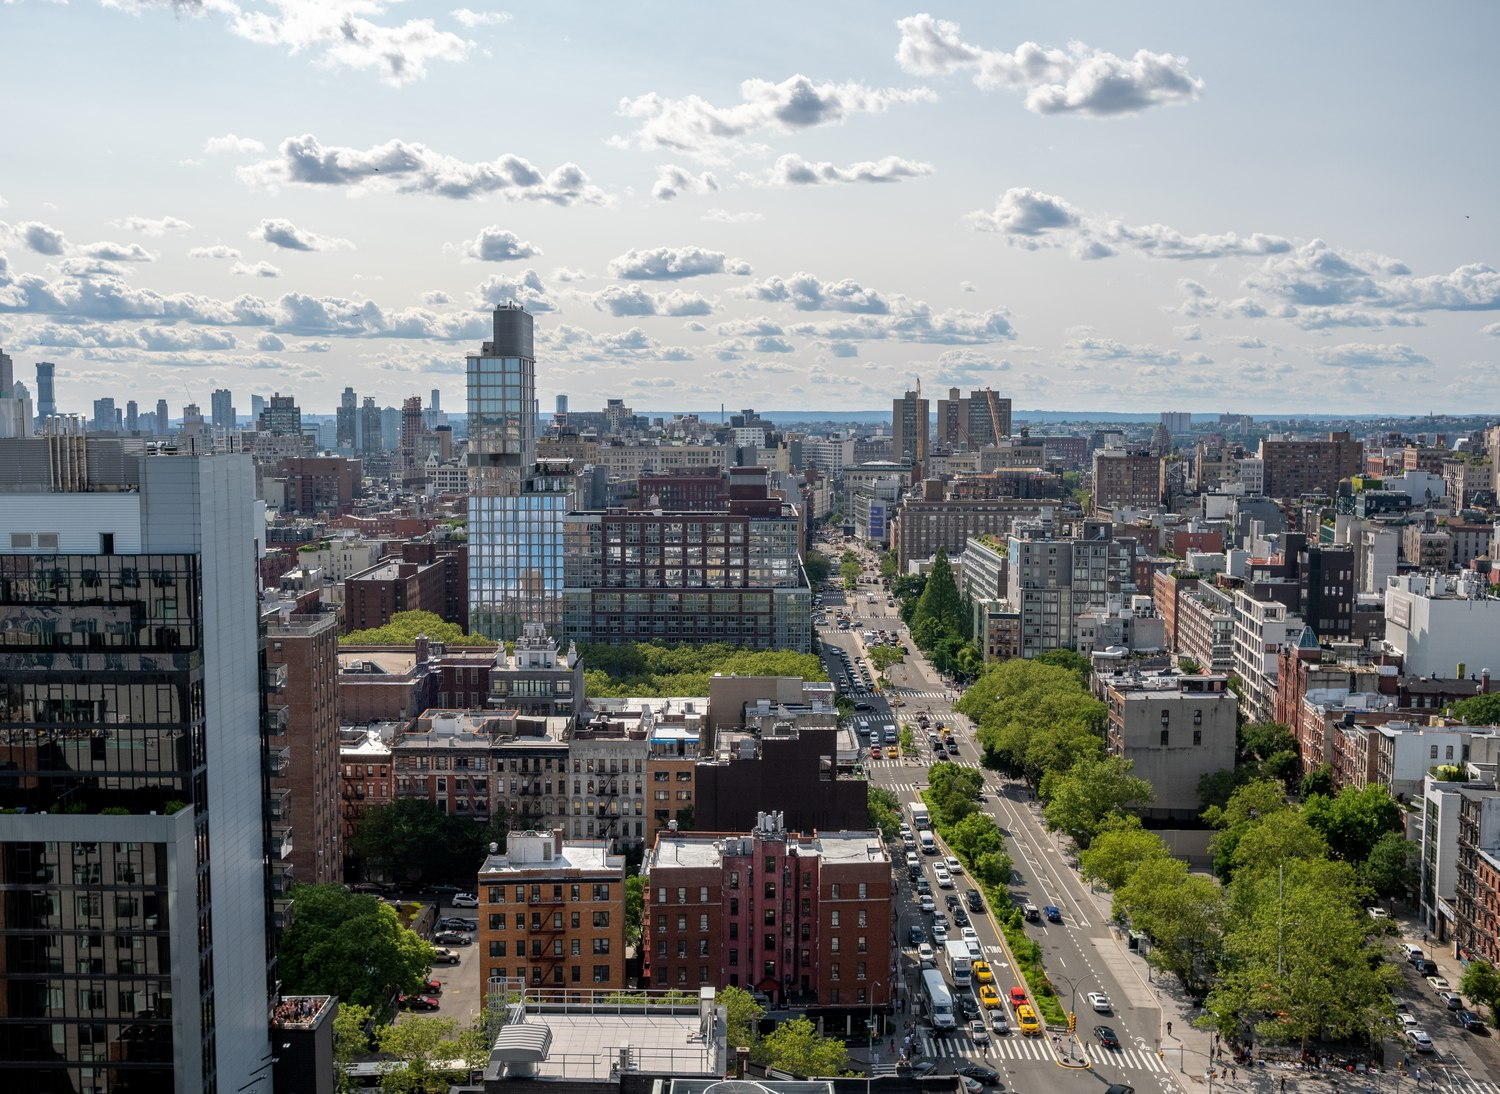 Lower East Side, facing west